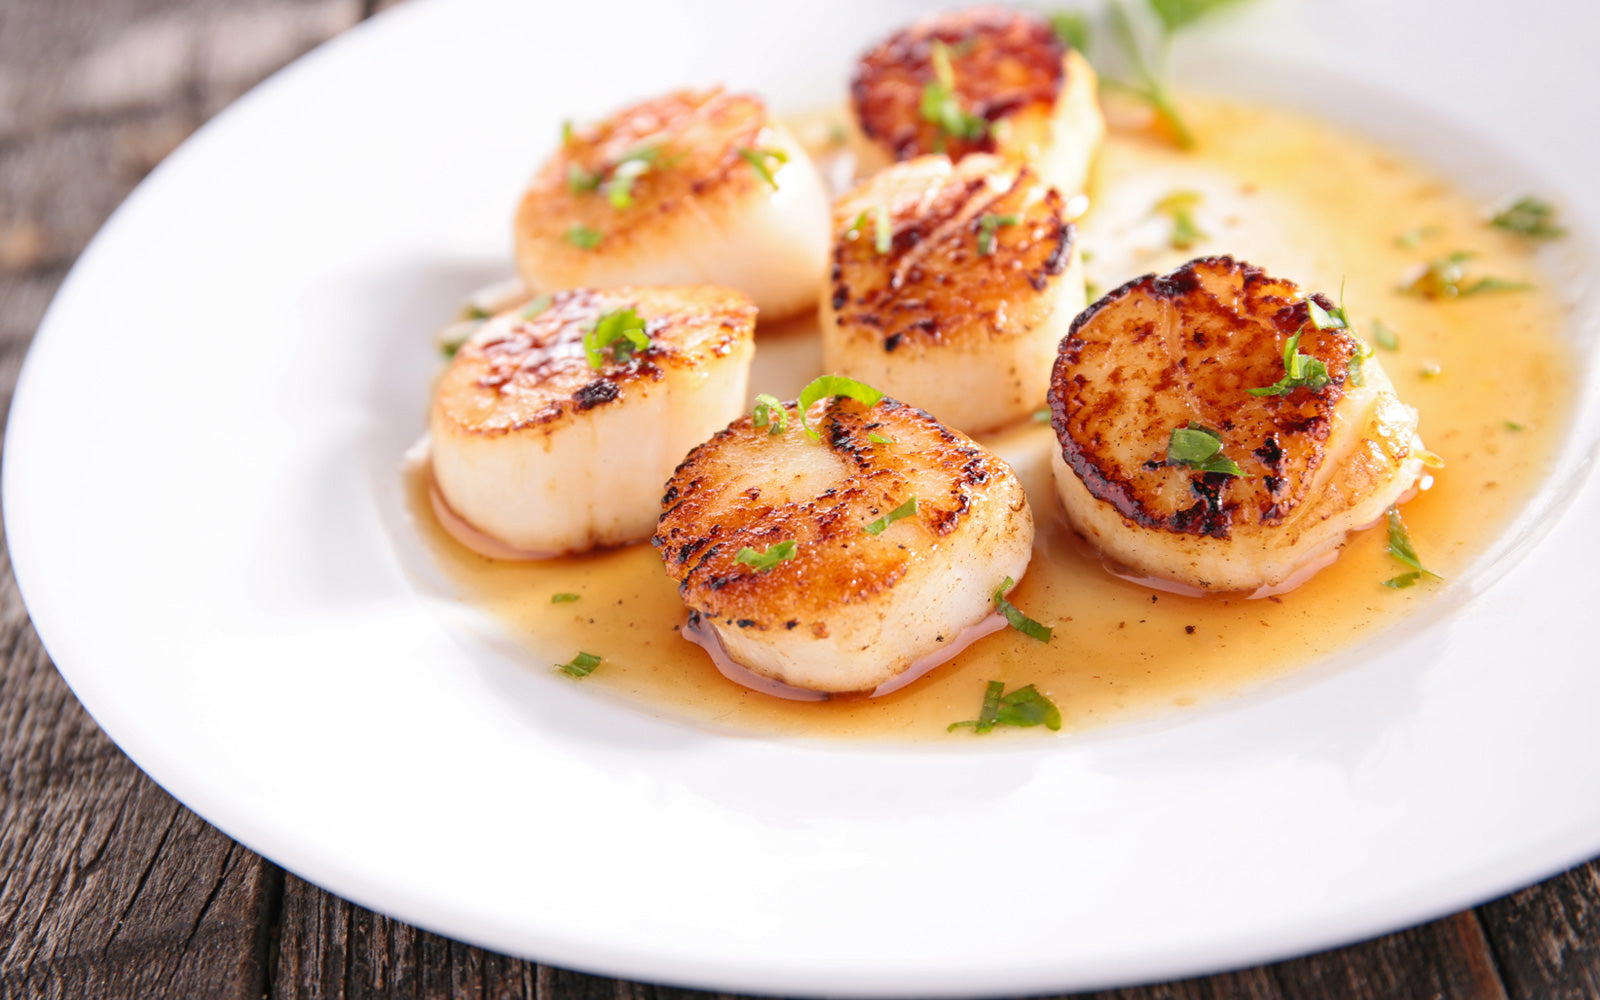 Pan Seared Scallops with Lemon Caper Sauce